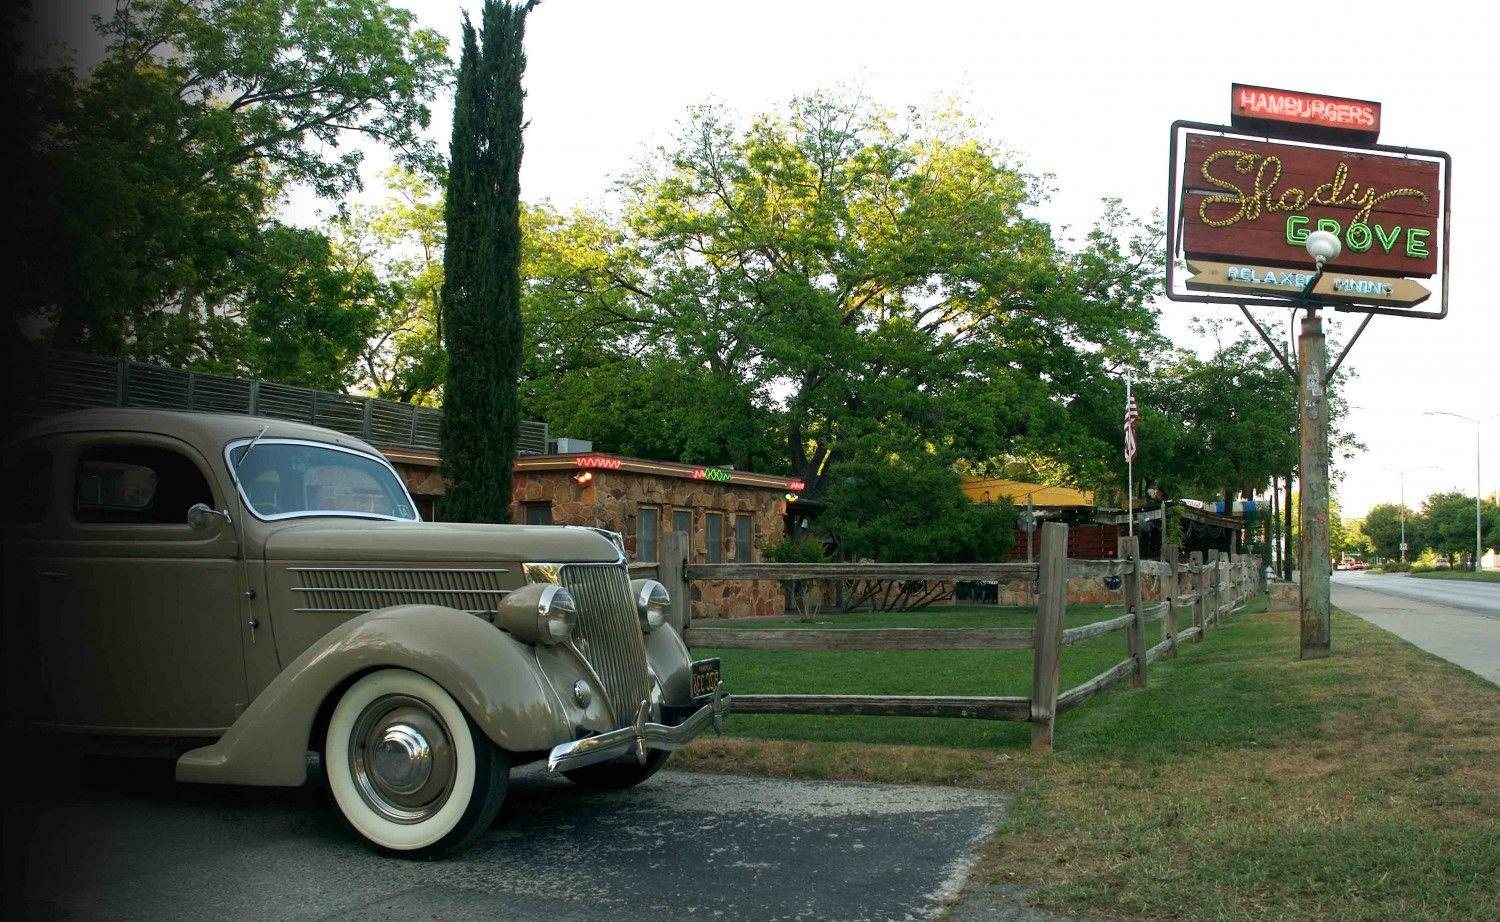 Shady Grove Restaurant  Barton Springs Road Austin, Texas